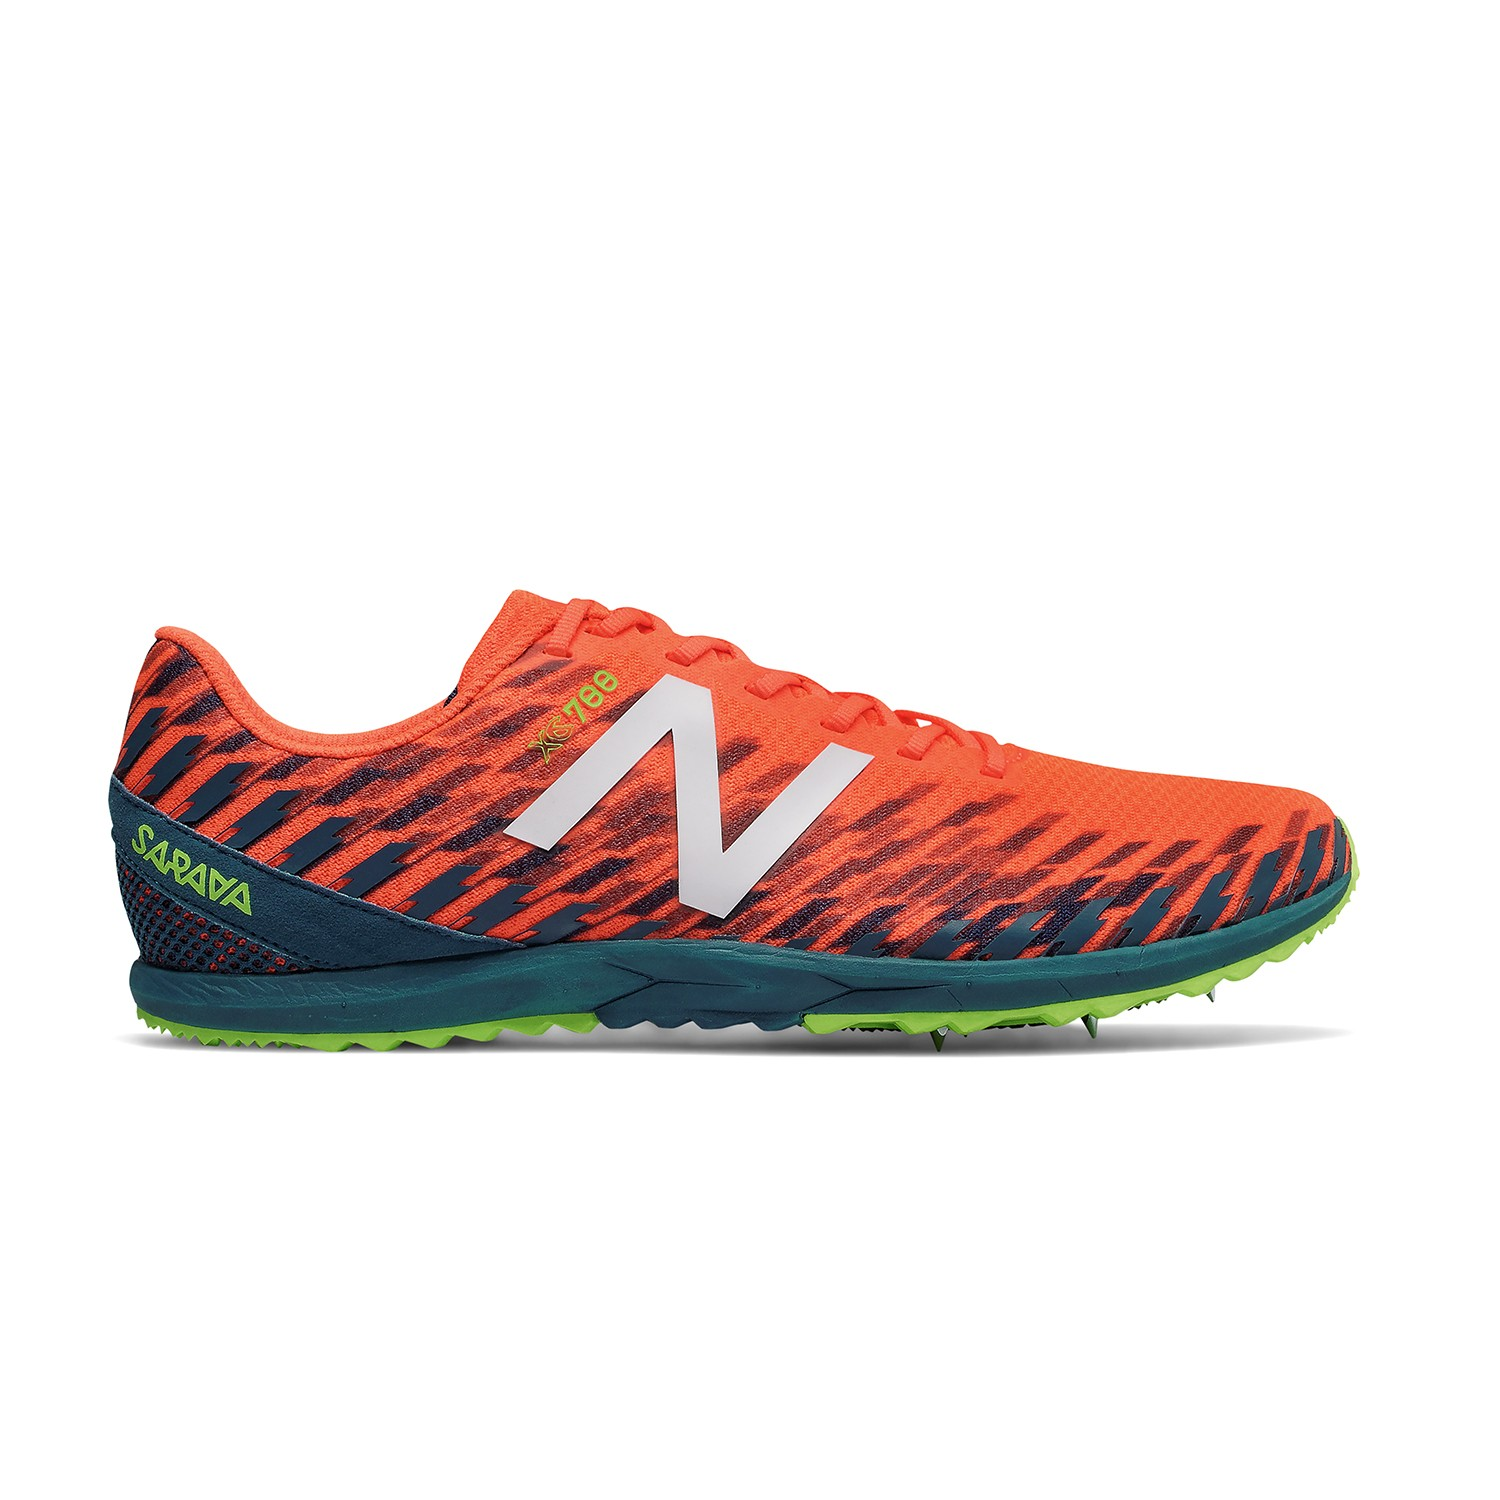 New Balance Men's XC700 Track Spike